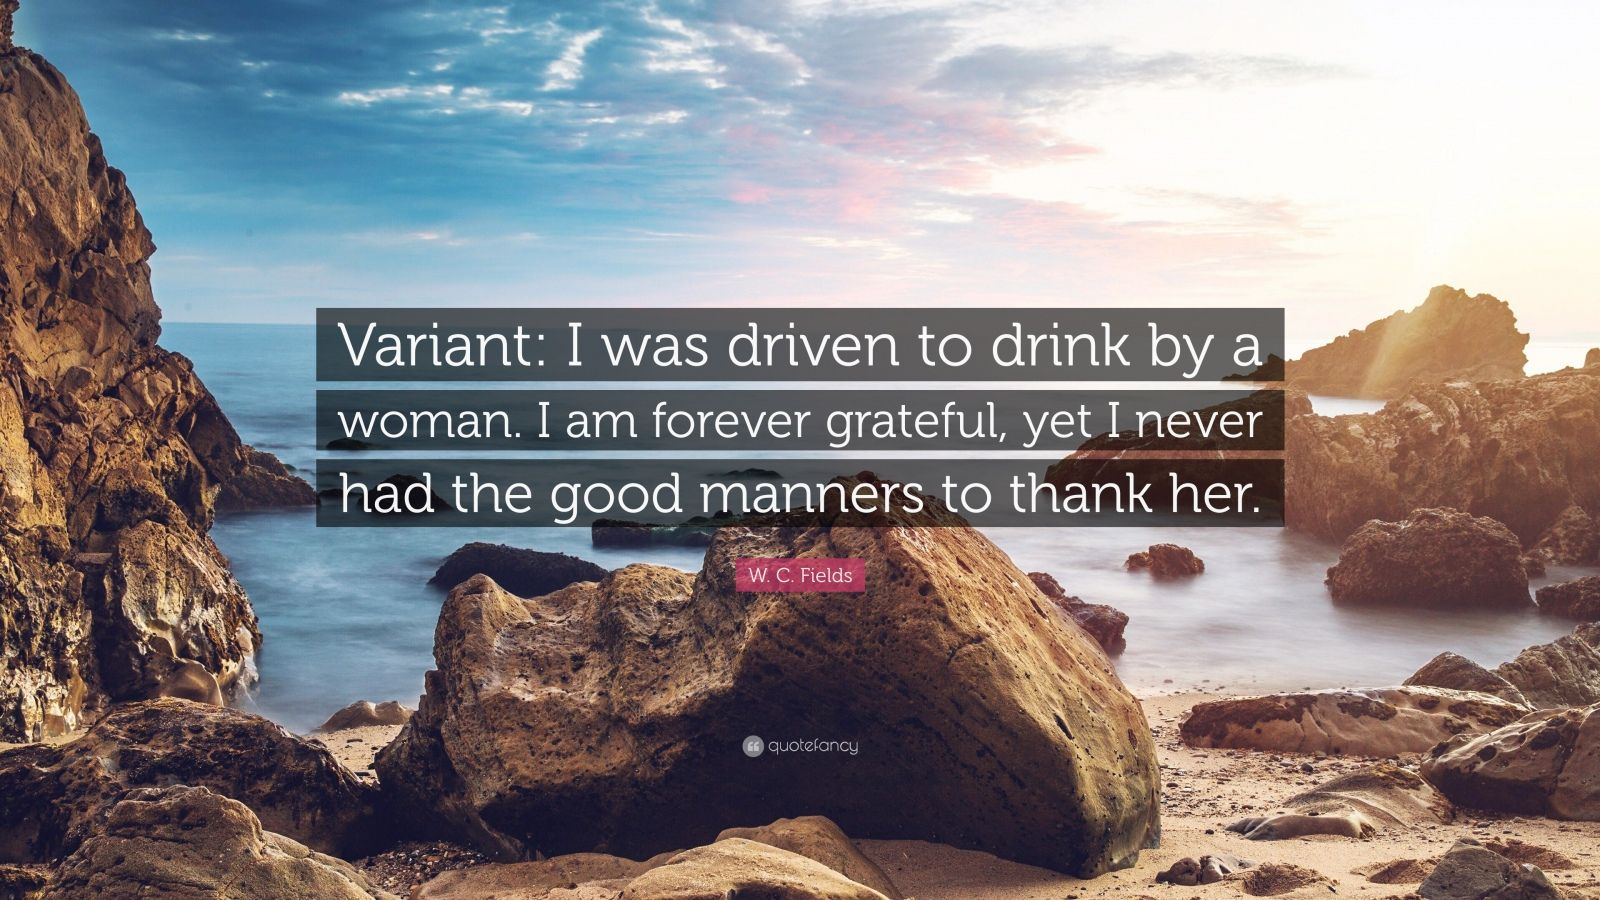 """W. C. Fields Quote: """"Variant: I was driven to drink by a woman. I am forever grateful, yet I never had the good manners to thank her."""""""